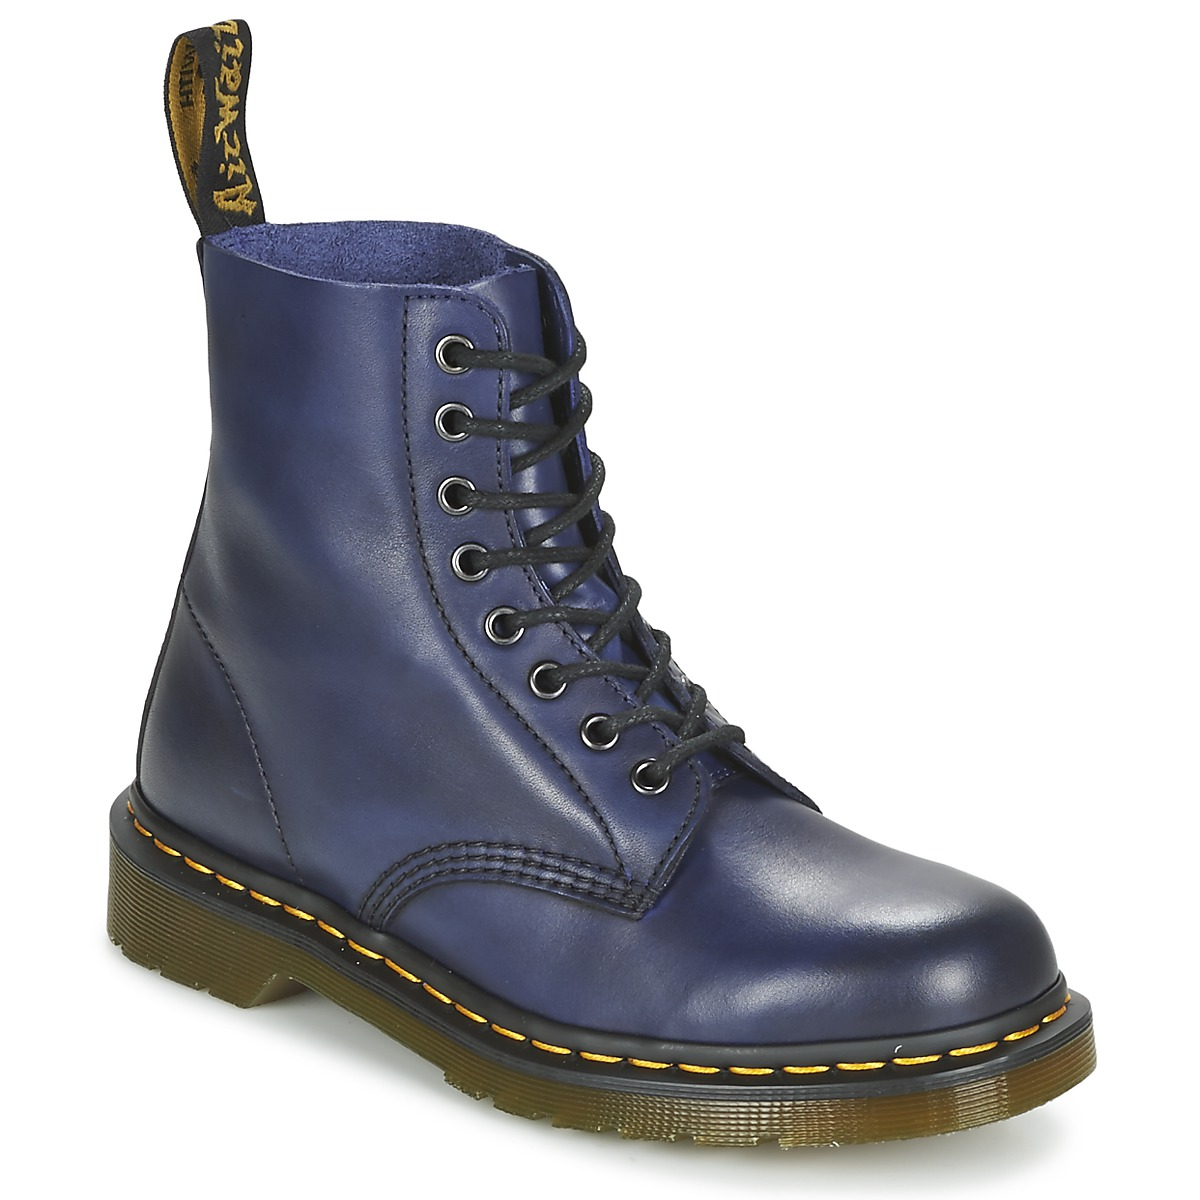 boots dr martens pascal marine boots femme spartoo ventes pas. Black Bedroom Furniture Sets. Home Design Ideas